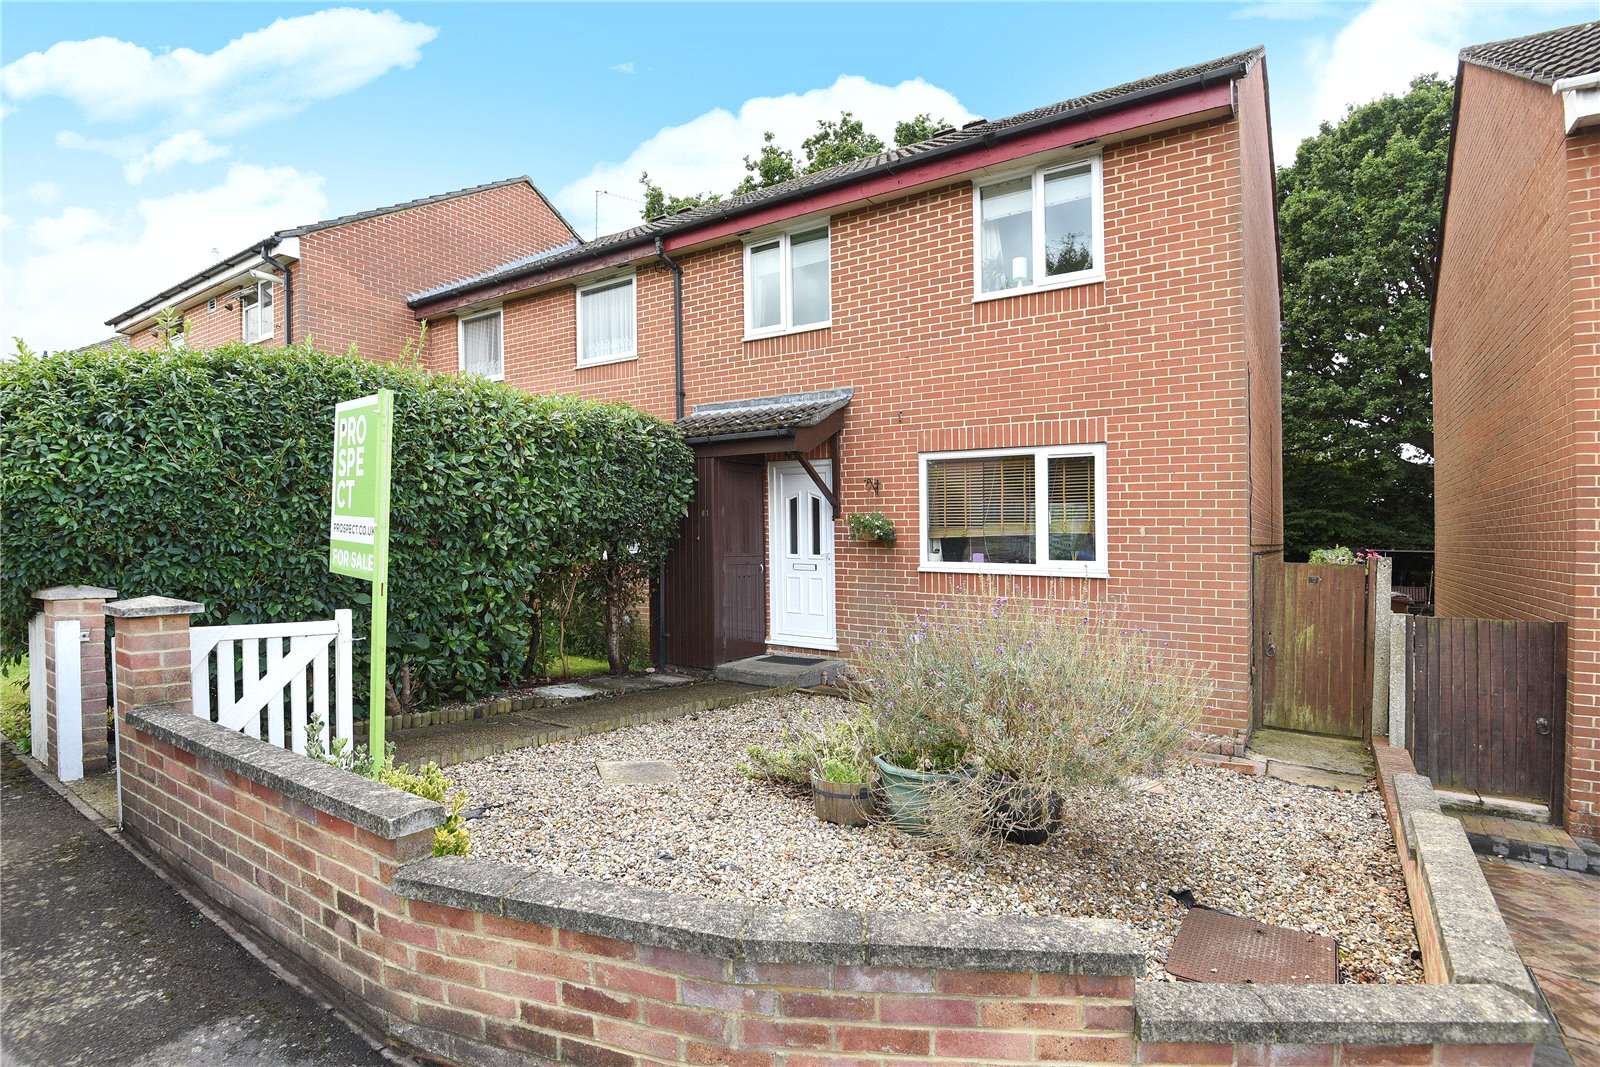 3 Bedrooms End Of Terrace House for sale in Humber Way, Sandhurst, Berkshire, GU47